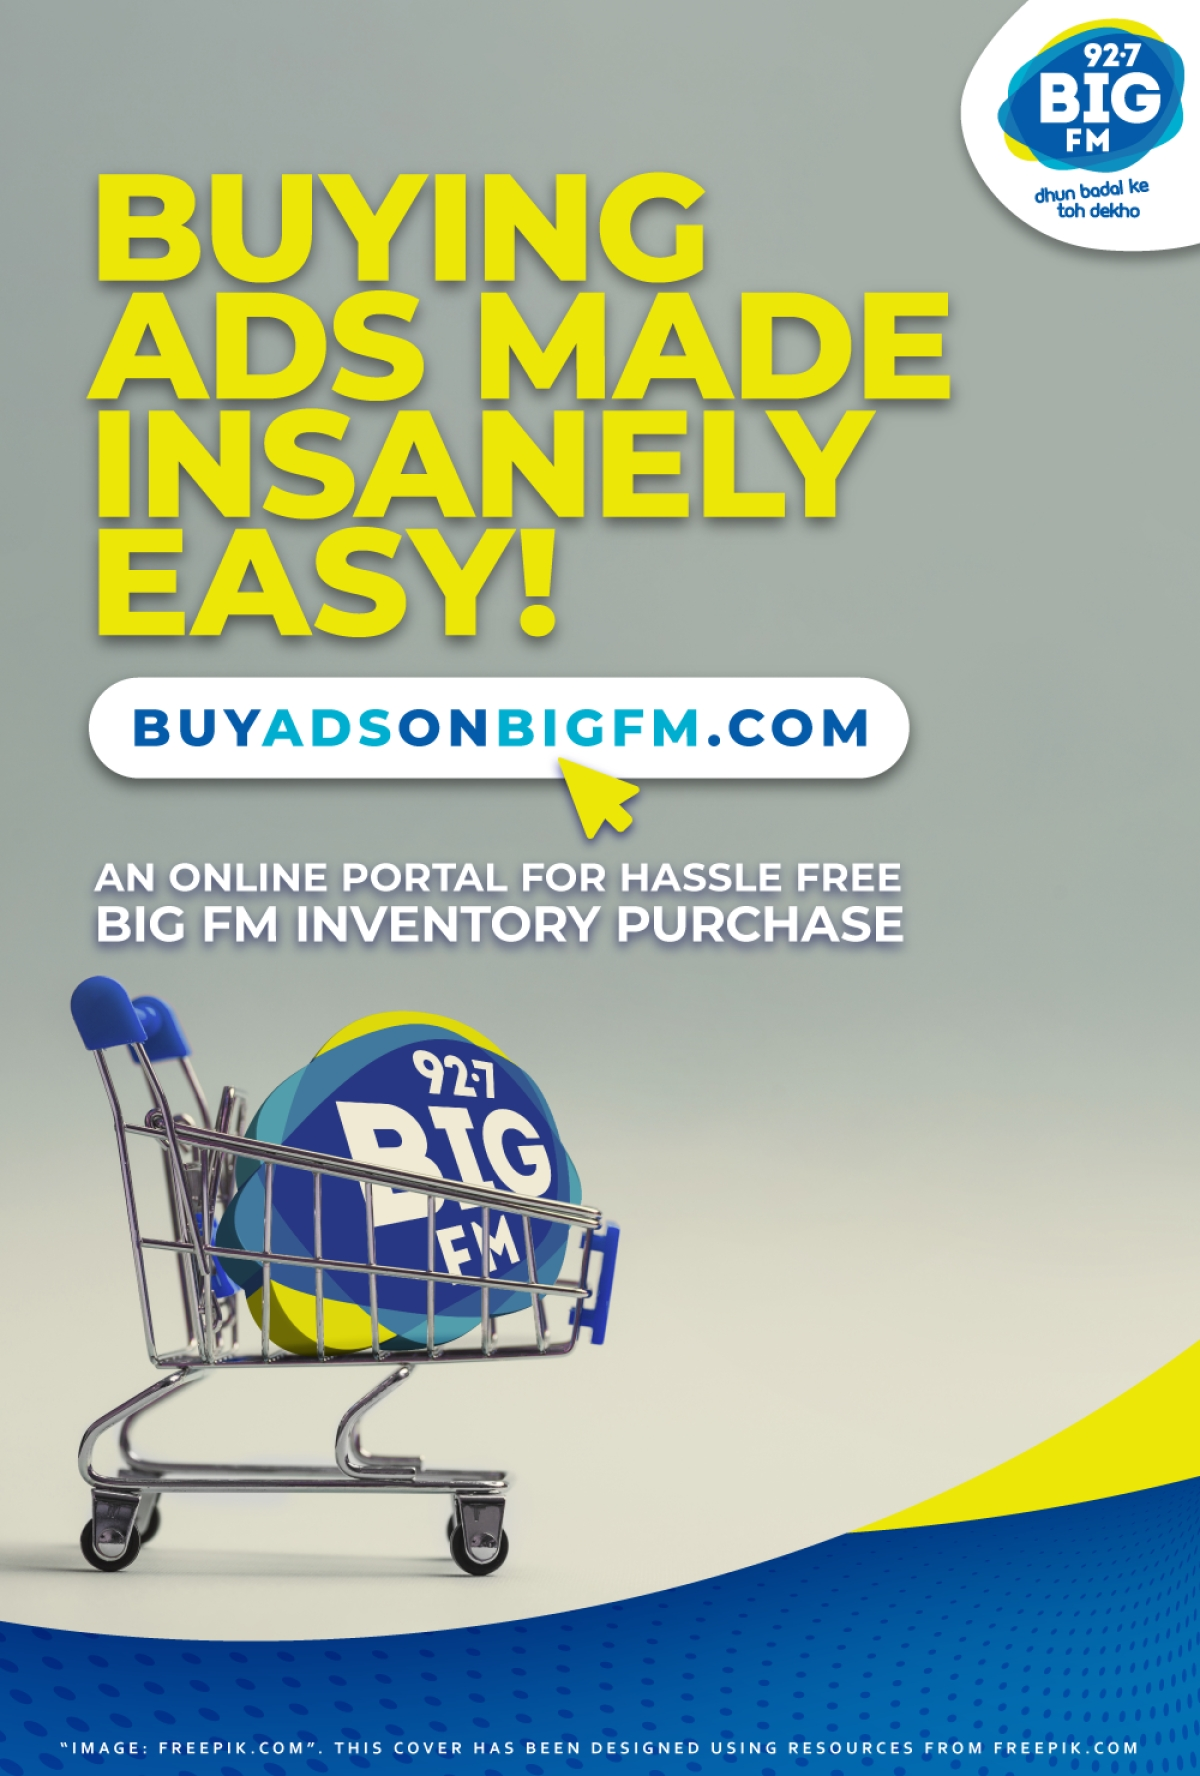 BIG FM's pioneering self-service platform 'BuyAdsOnBigFM.com'